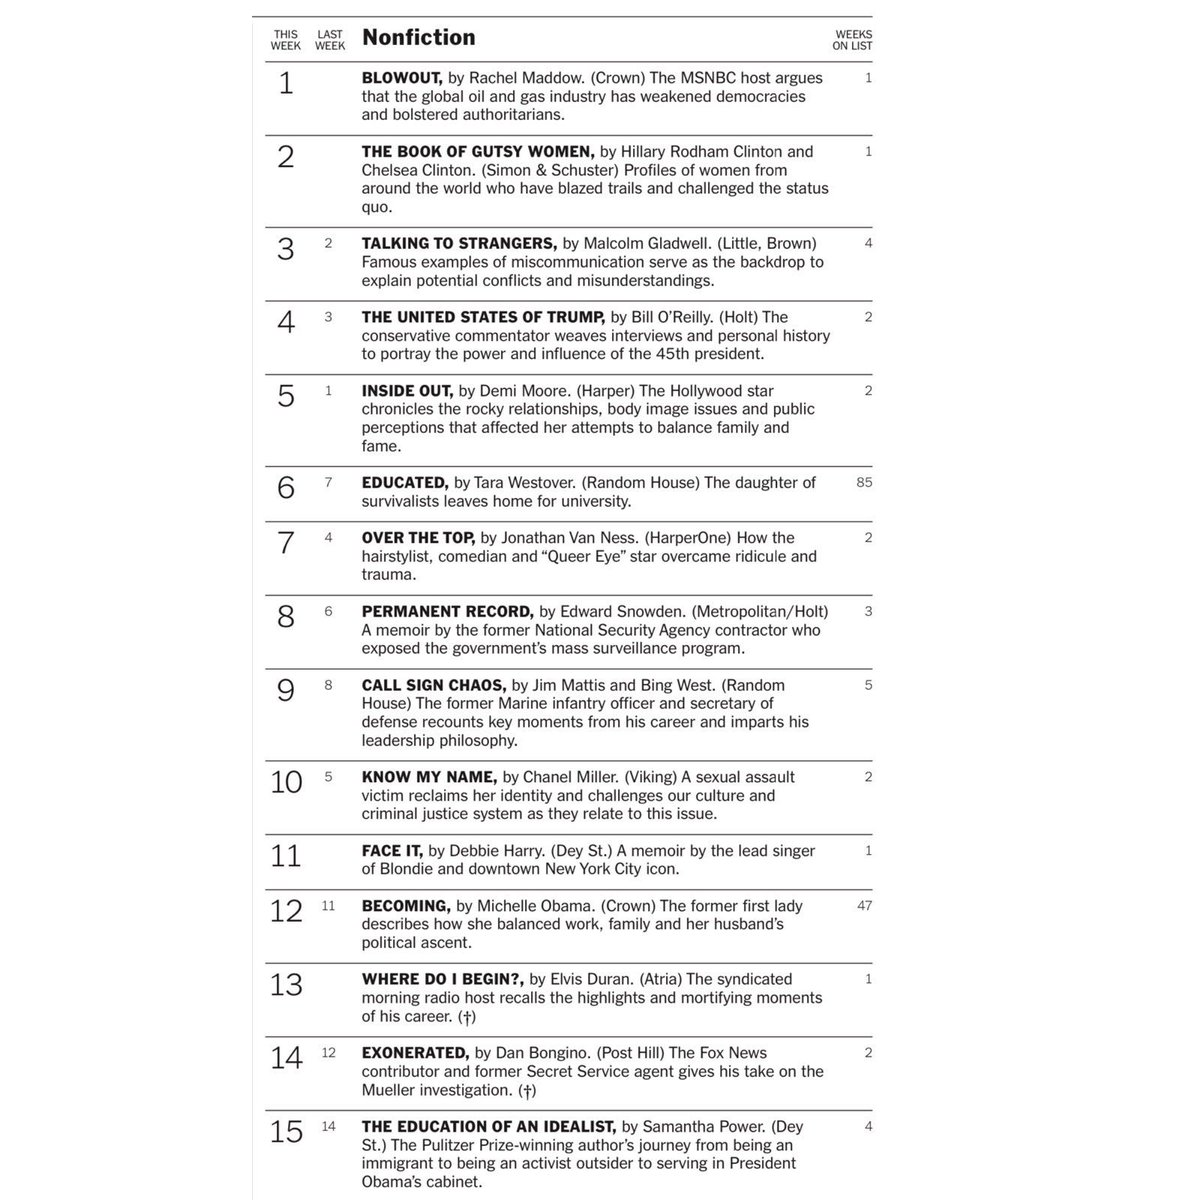 New NYT bestsellers list is out  @maddow debuts at #1   @HillaryClinton & @ChelseaClinton debut at #2 https://t.co/g8JSKL02N9